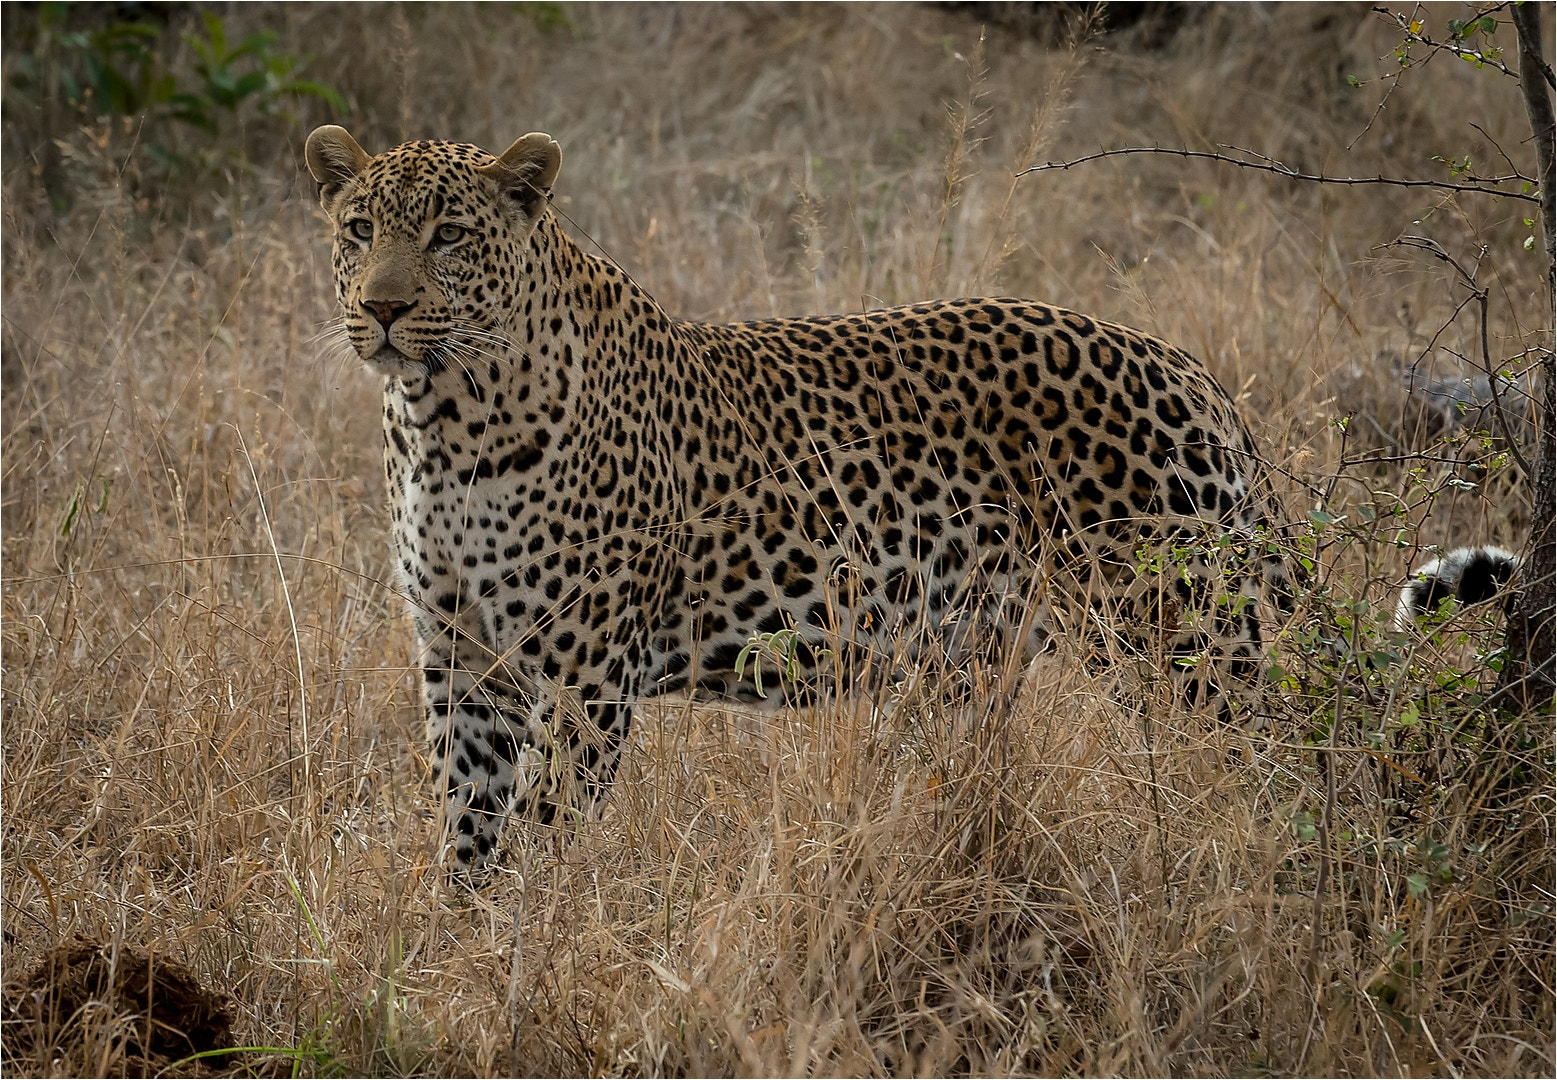 Photograph Tingana male leopard by Pieter Gravett on 500px